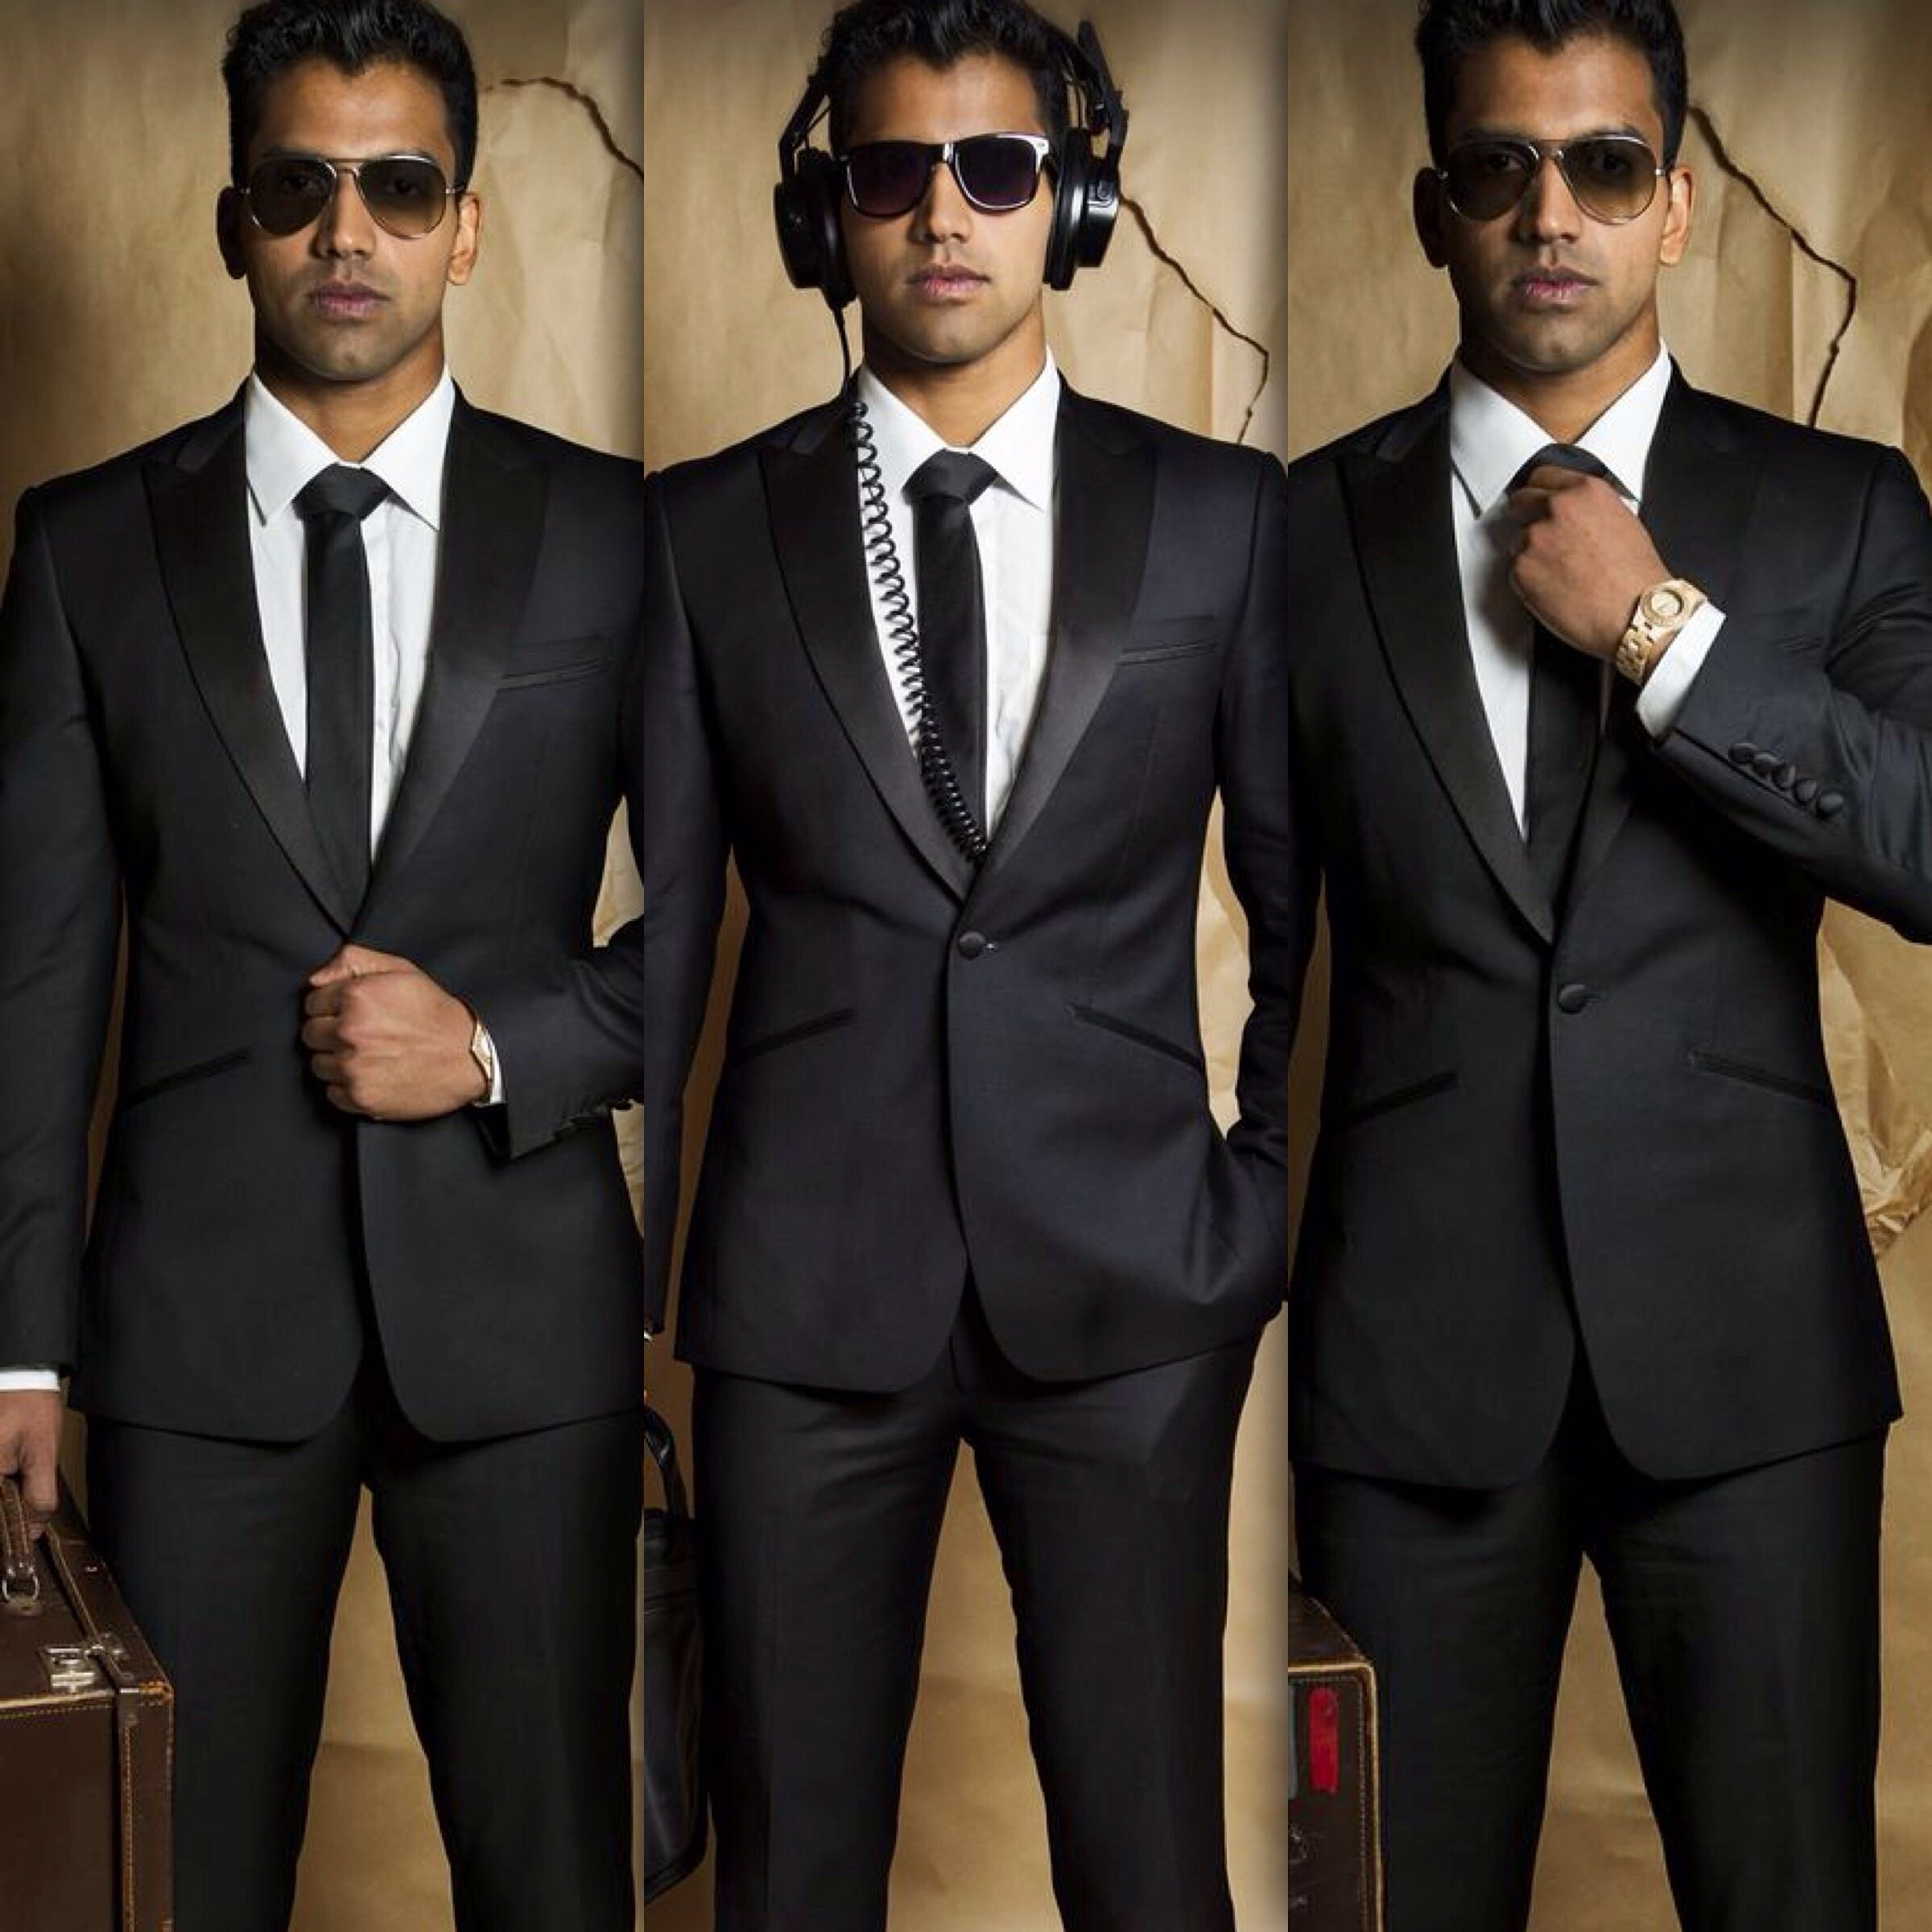 Men In Black Suit Office Bond Style Cool Sameer Vashishat